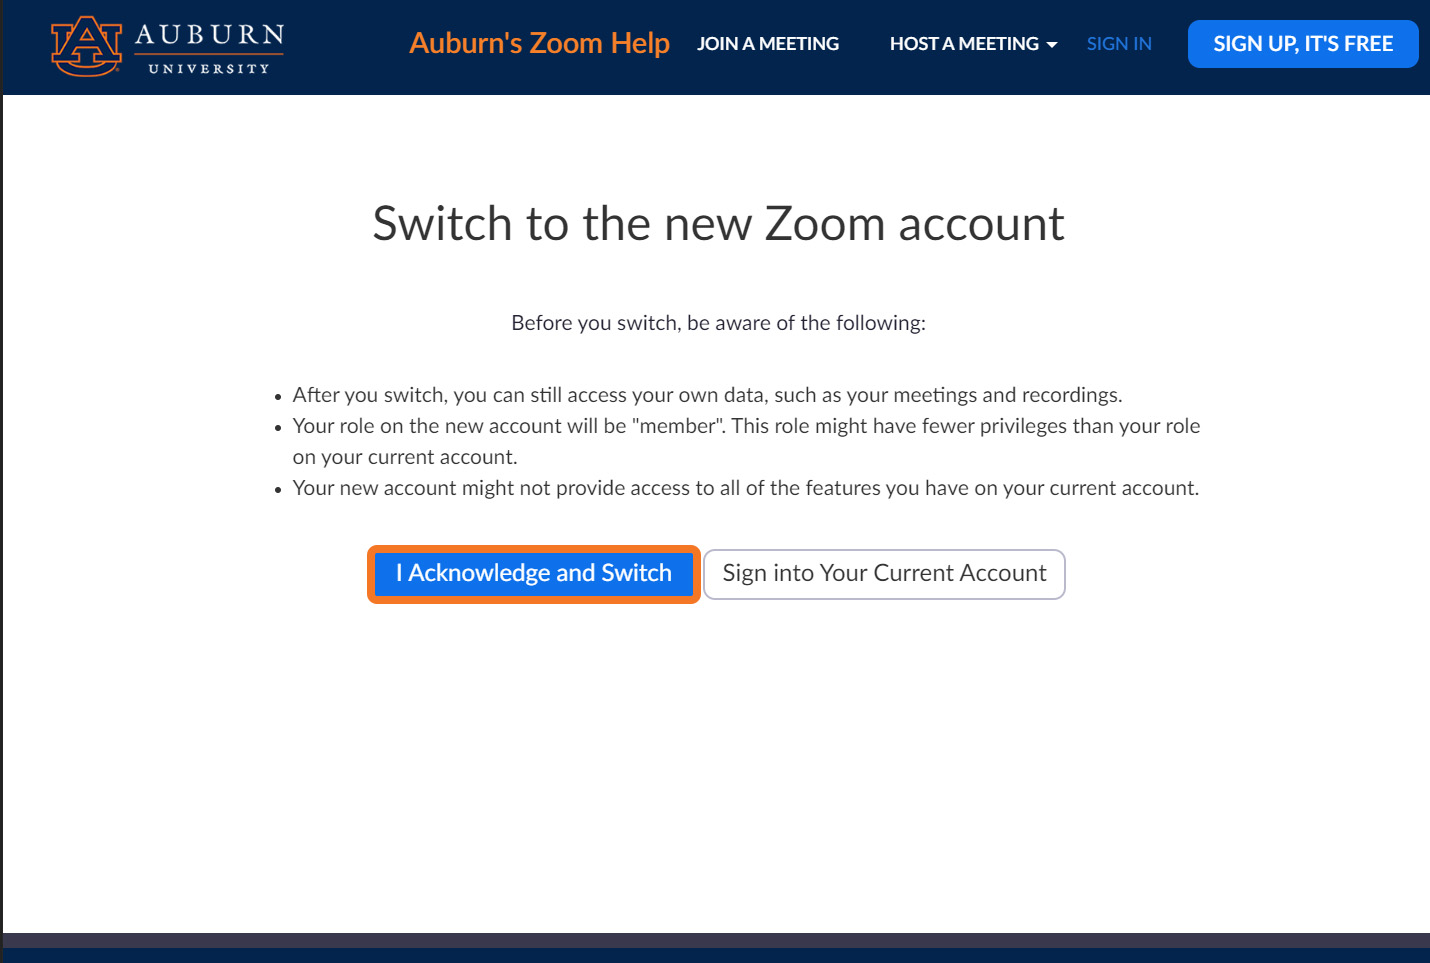 switching accounts by confirming the switch